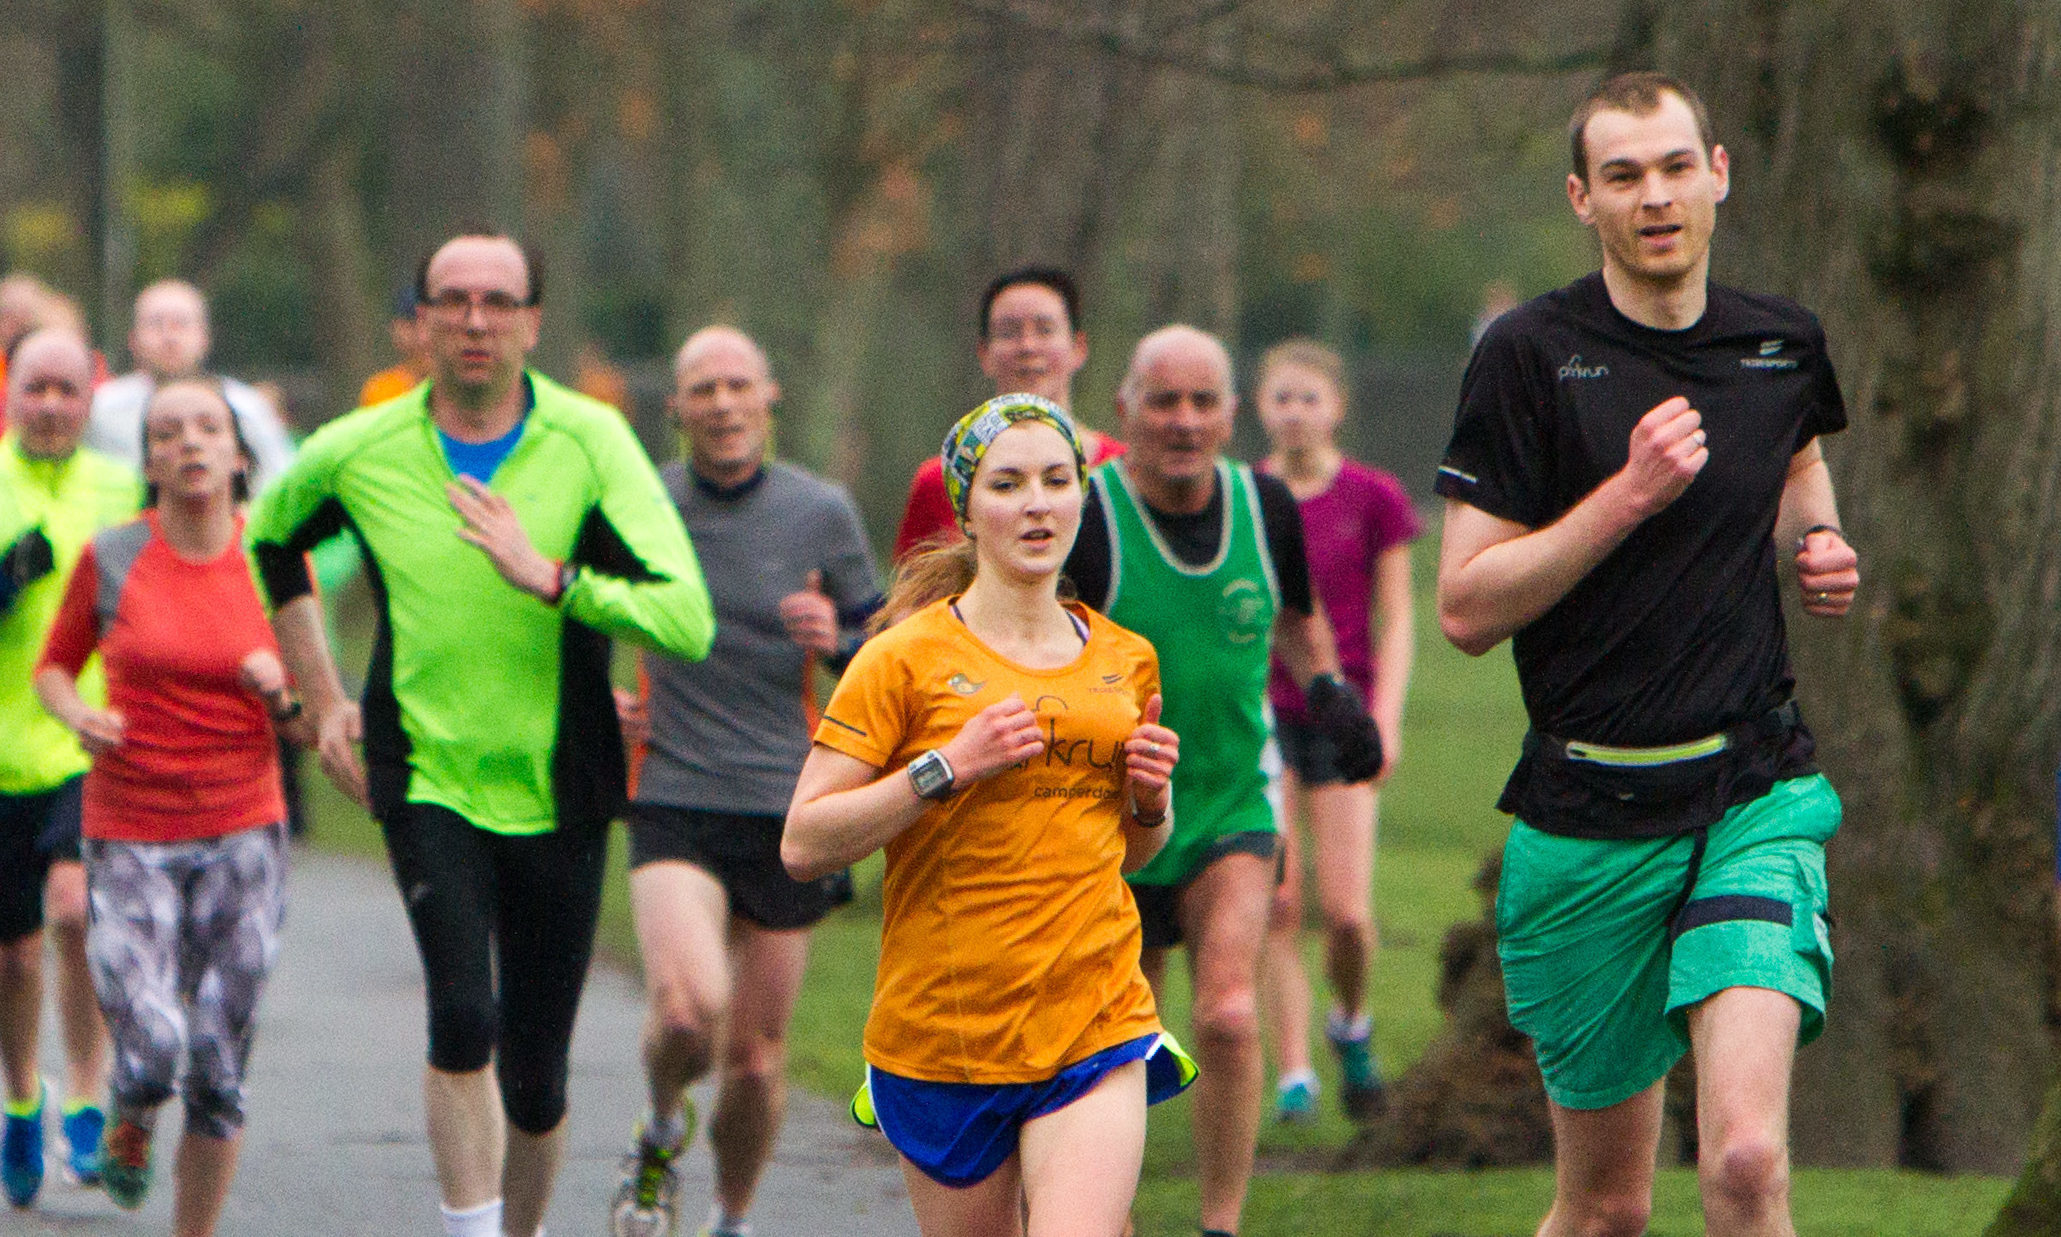 Parkrunners in Perth. Hundreds of thousands of people now join in with their local Parkrun after the free running event began in Teddington in 2014.